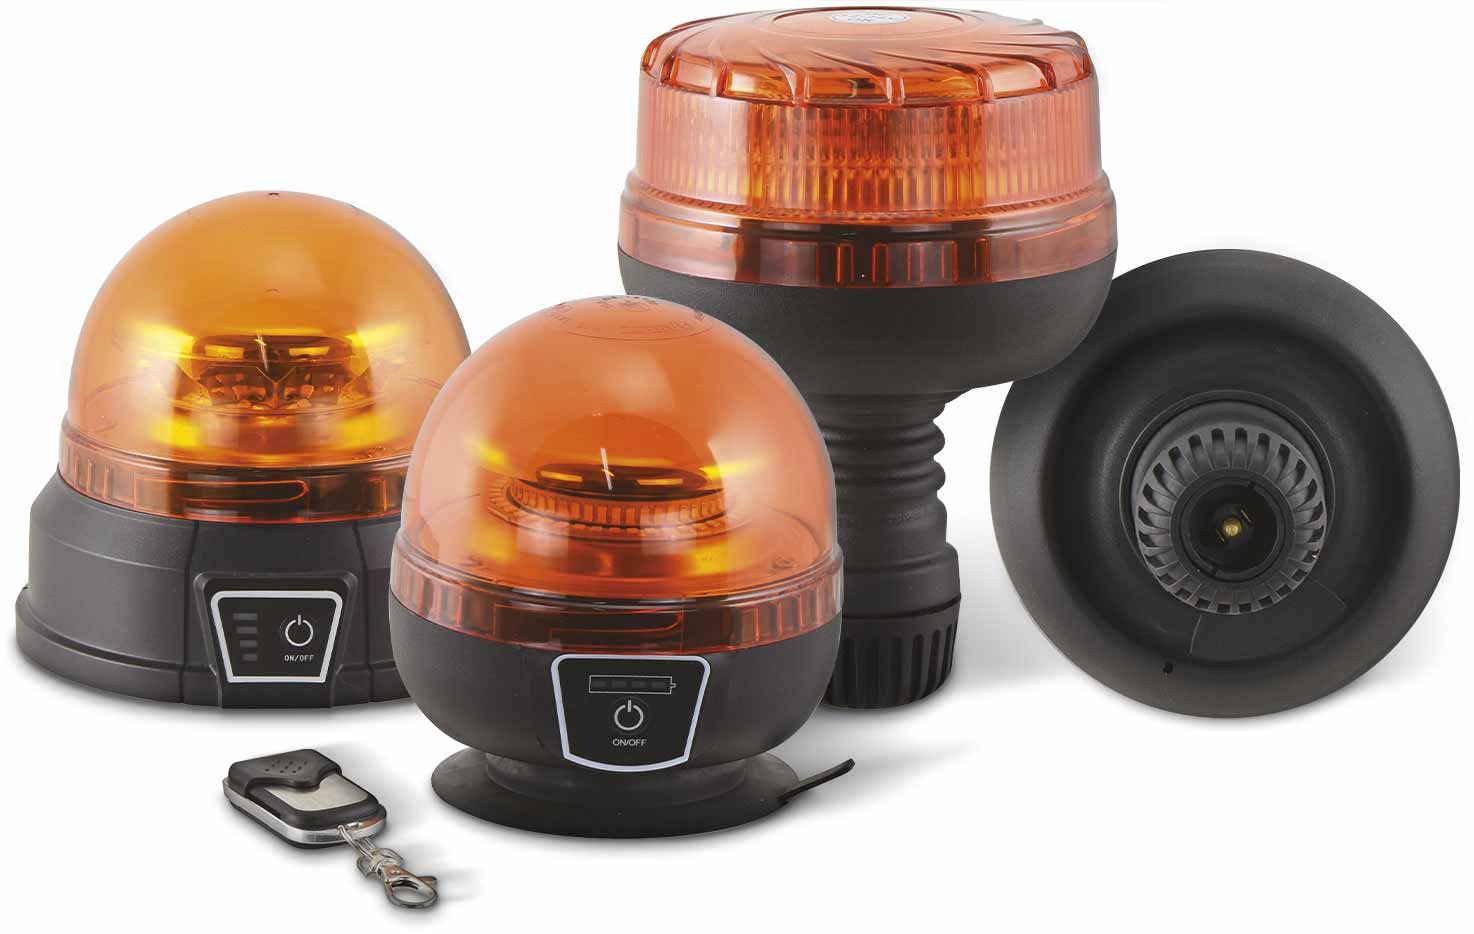 New Sparex LED Beacons